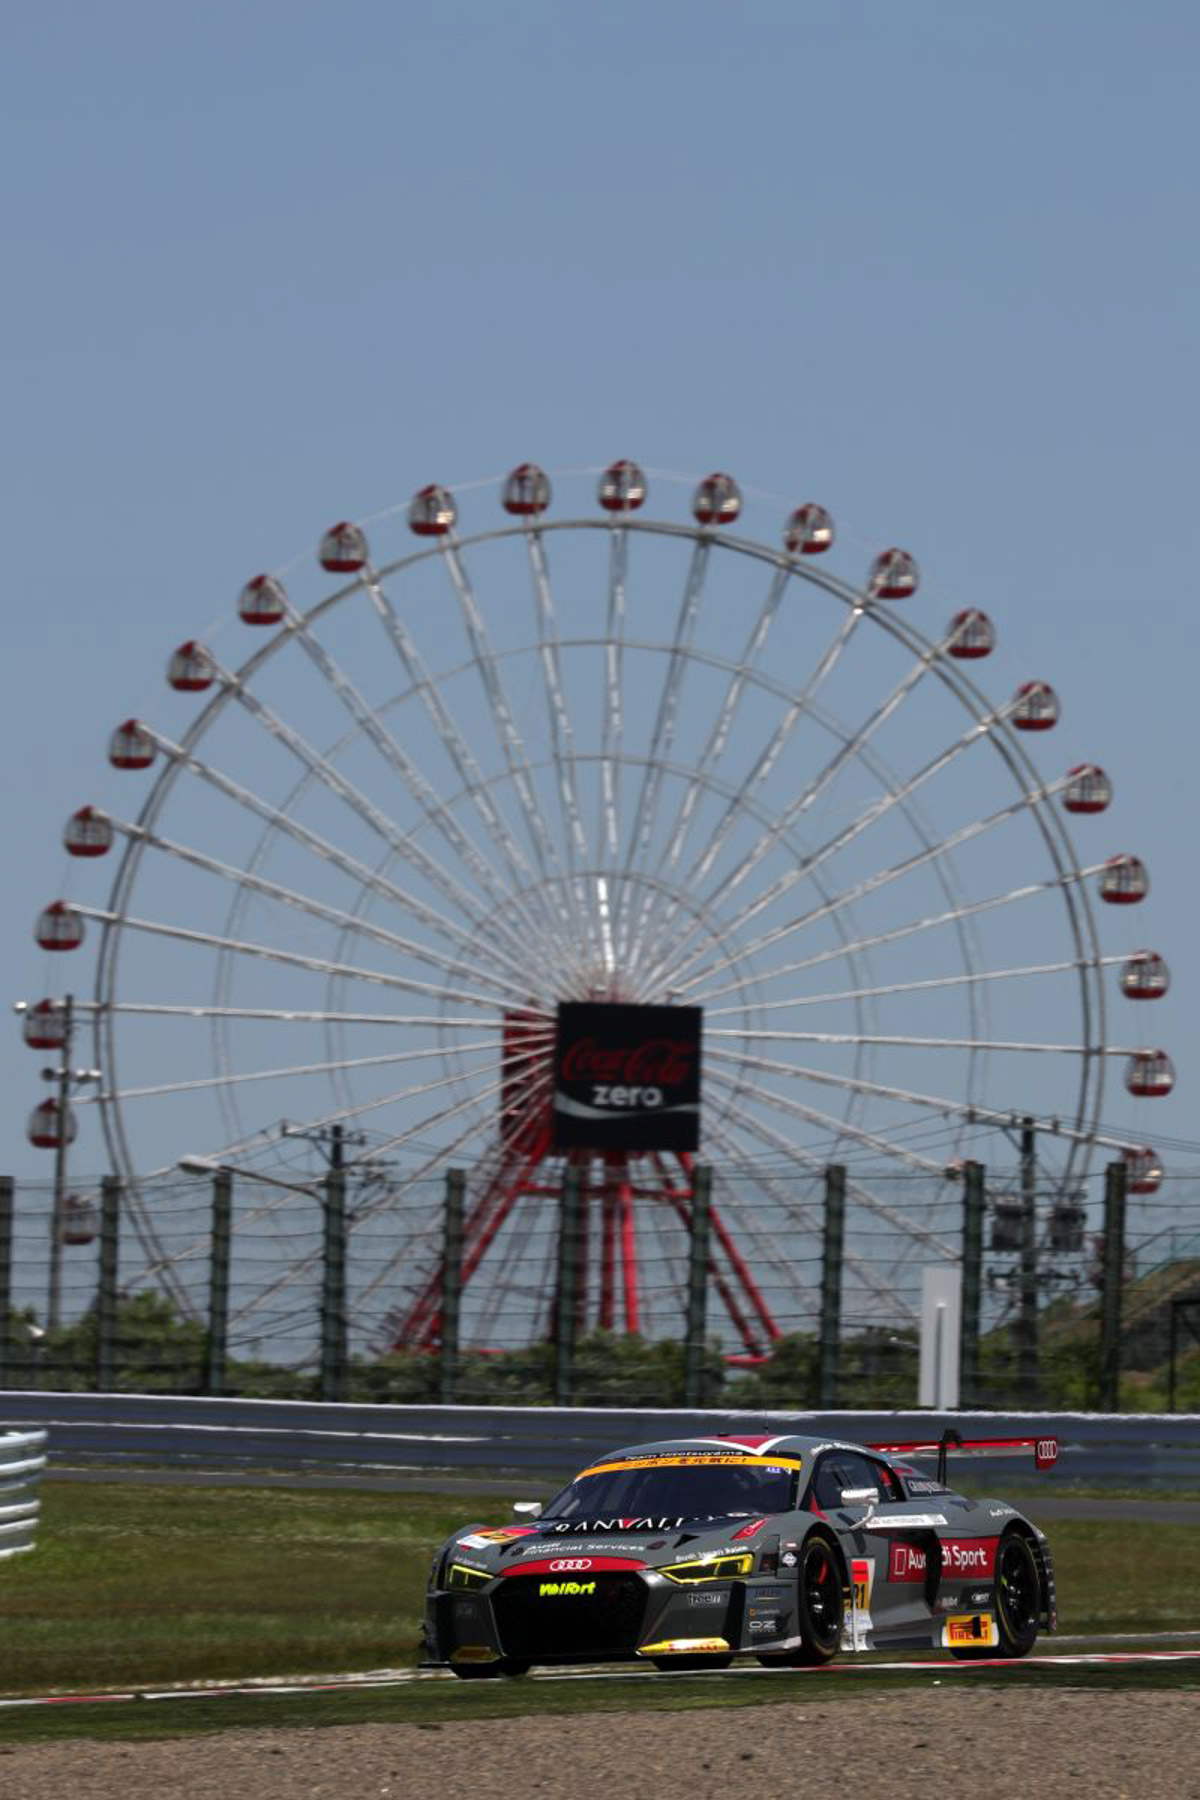 Audi Sport confirms teams and drivers for Suzuka 10 Hours